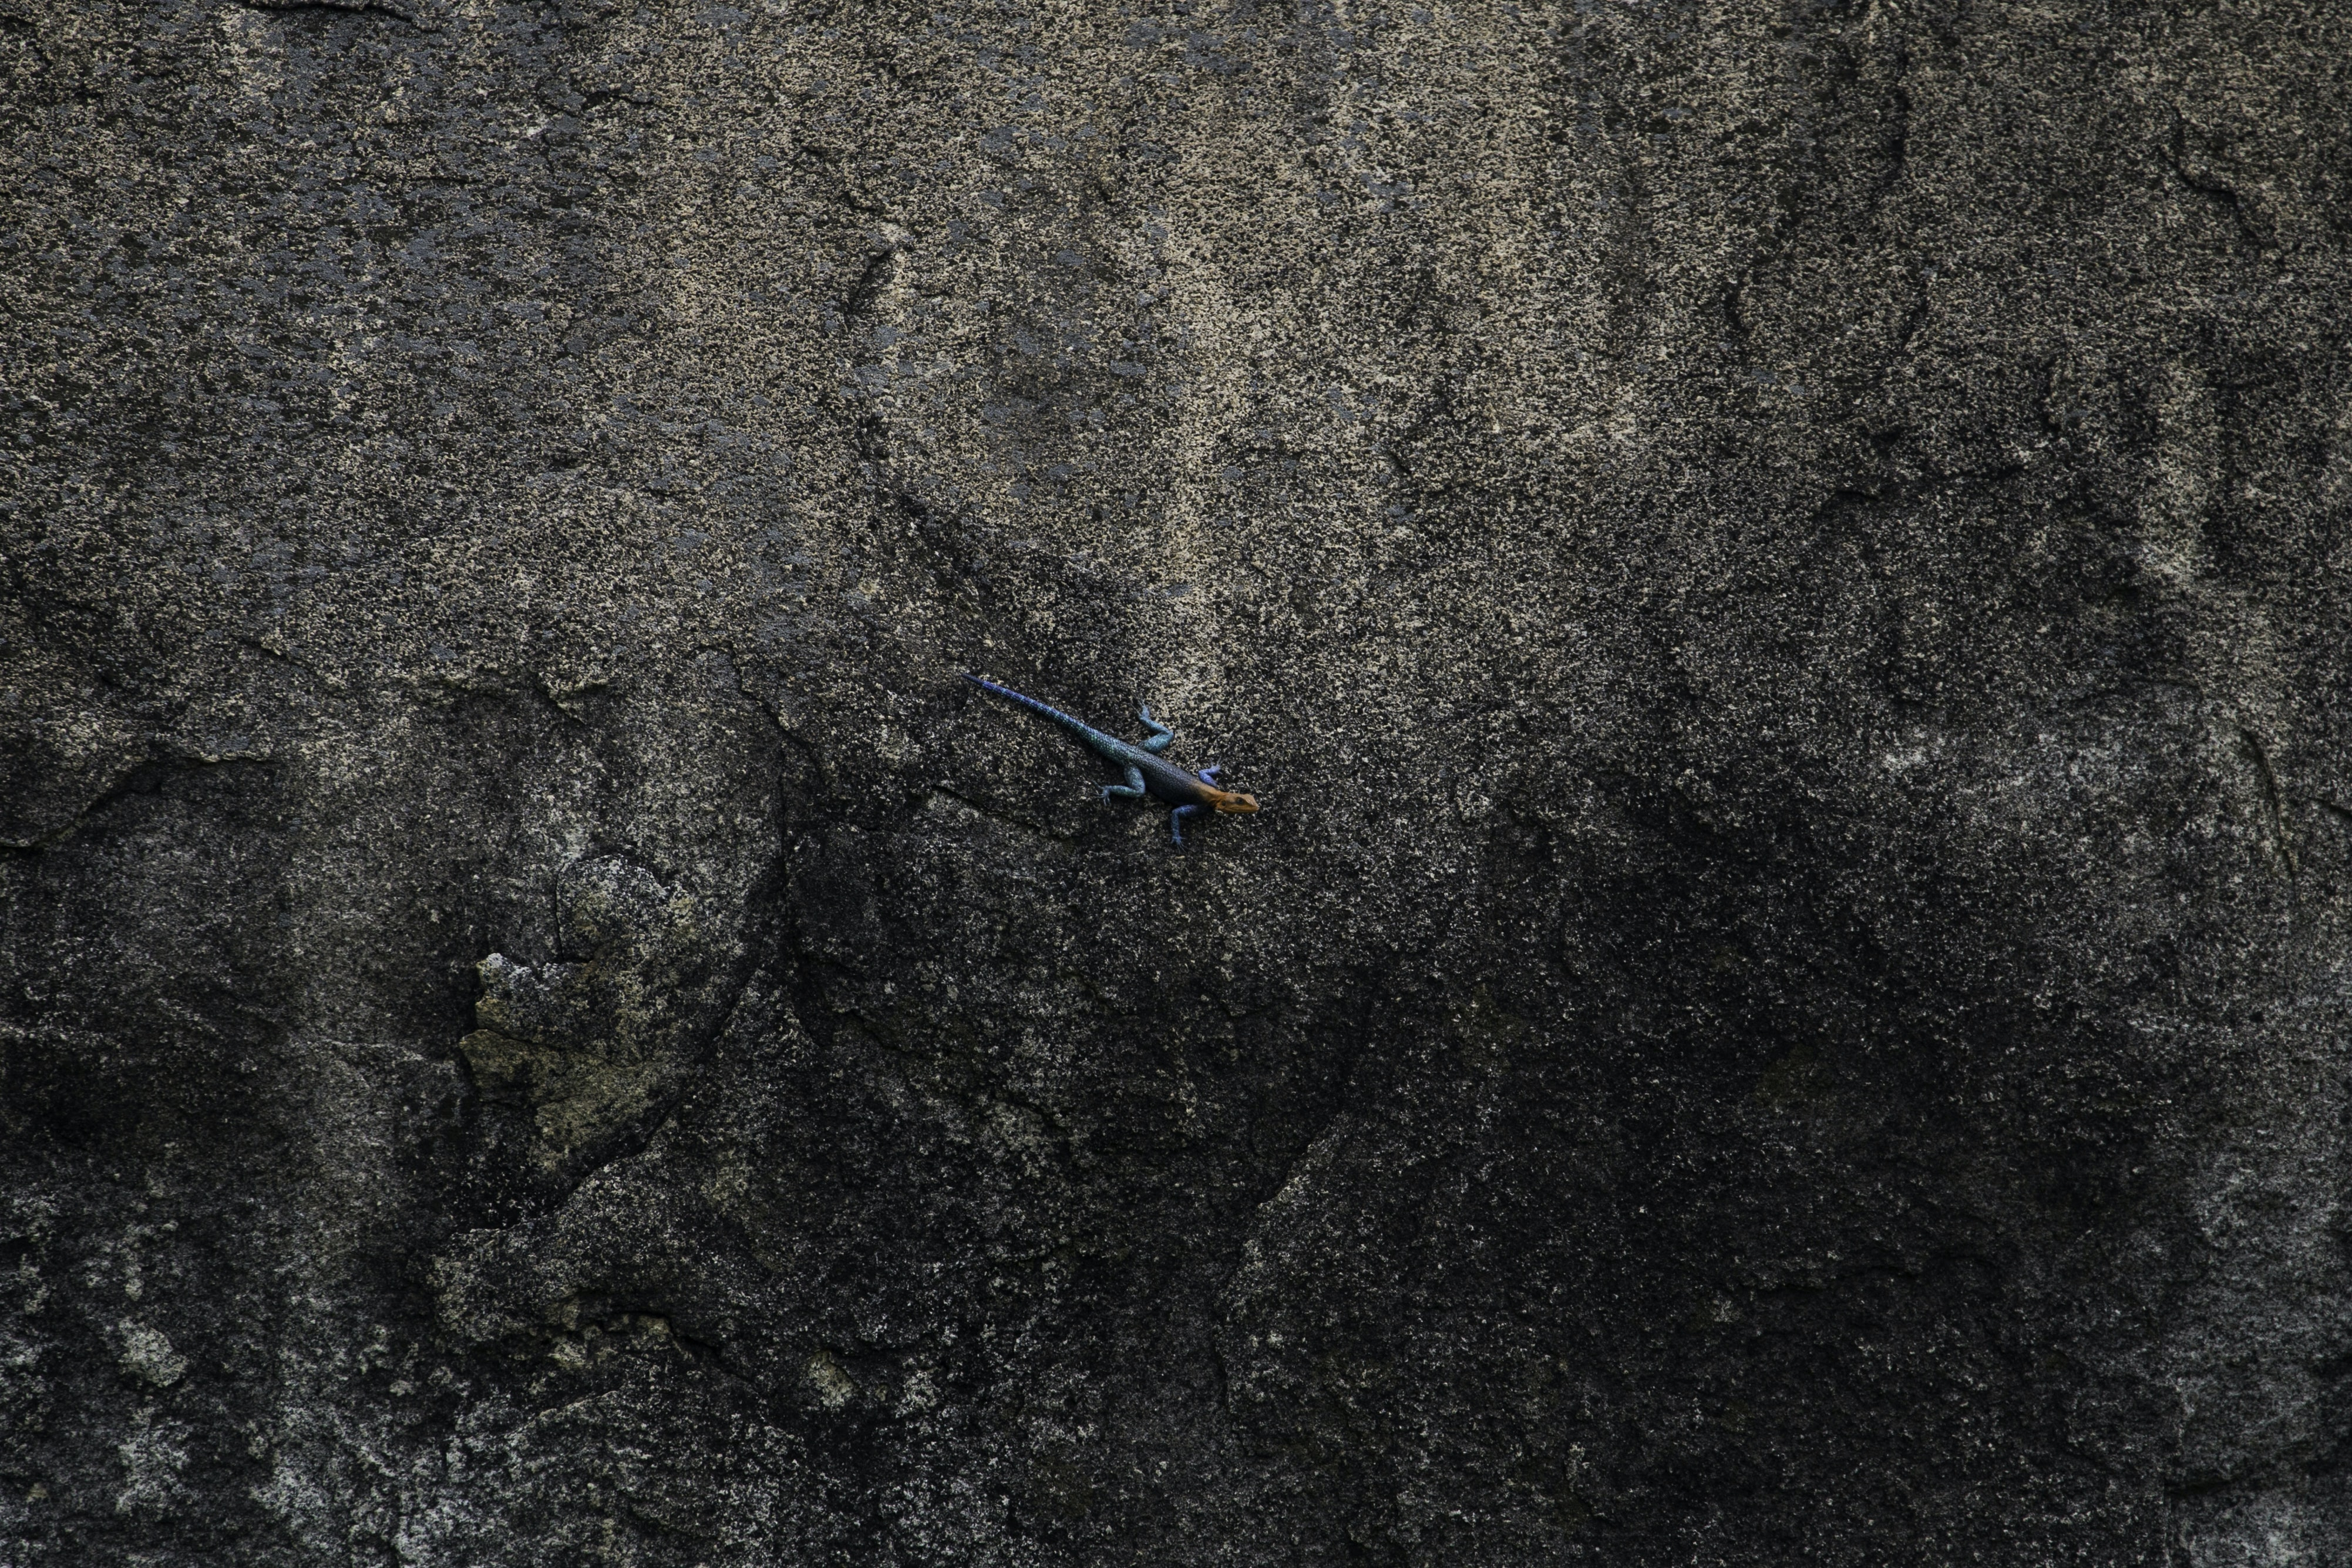 An orange headed lizard with a blue body crawling on a rocky surface in Ruaha National Park